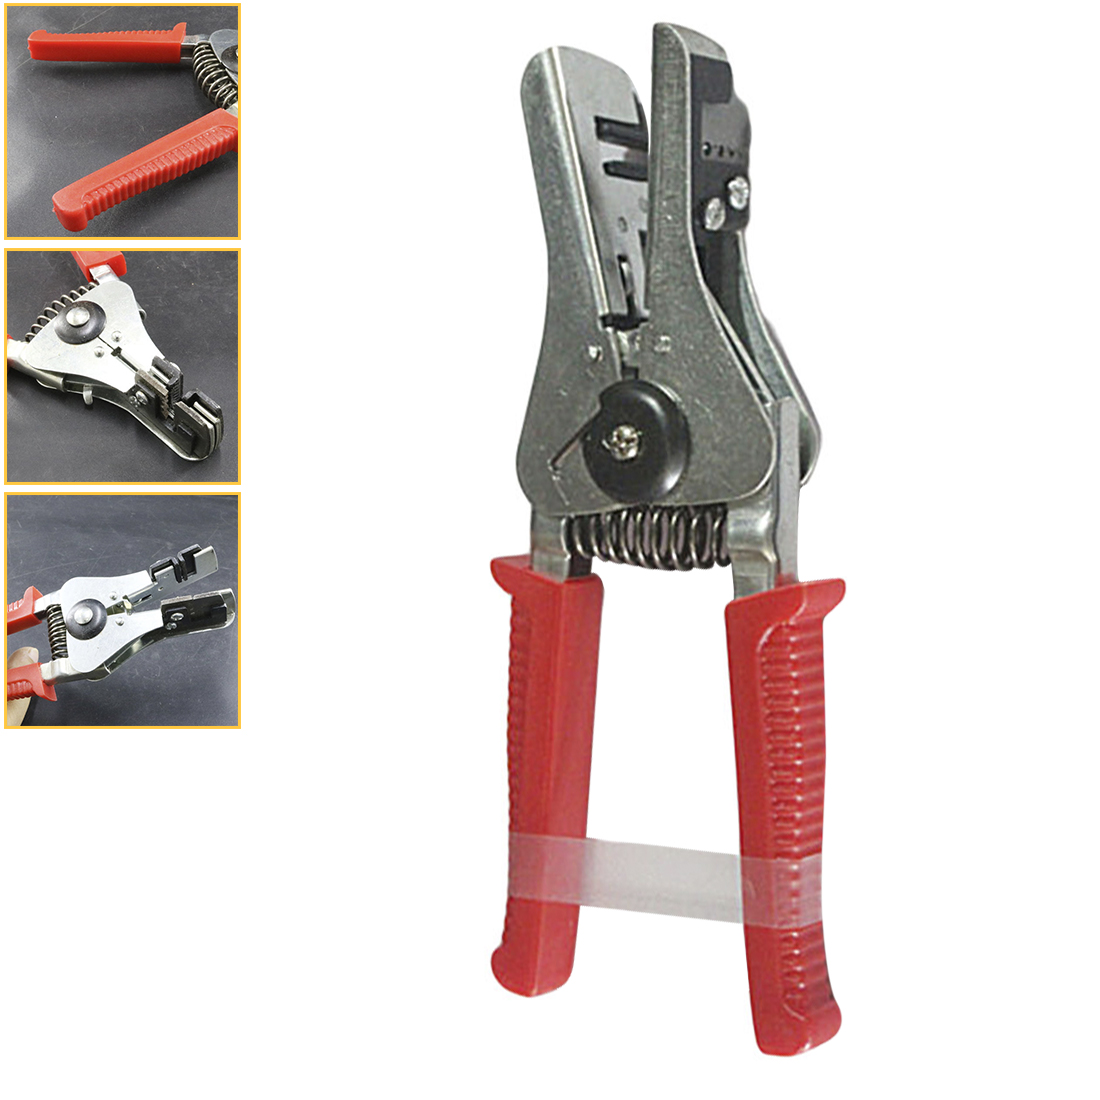 Portable soft pack for Plato Model 170 Flush Wire Side Cutters Shears